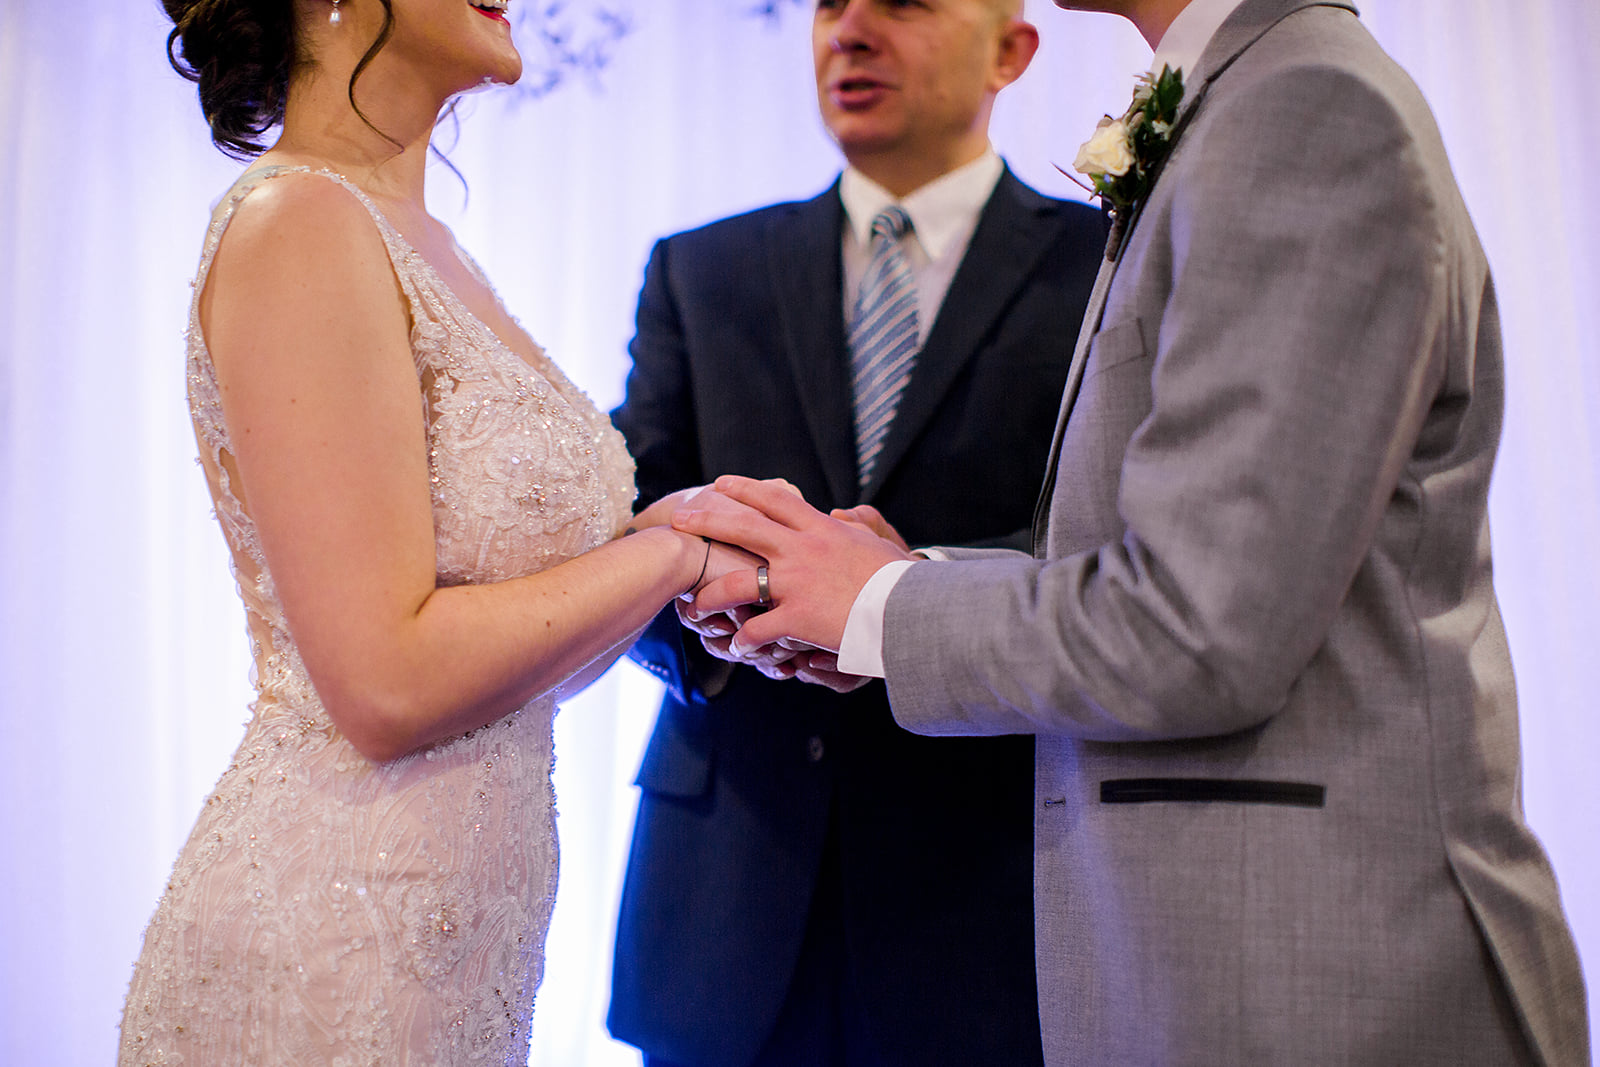 George Maverick Minnesota wedding officiant, will calm your nerves and help you focus on the love Photo by Rachel Graff Photography